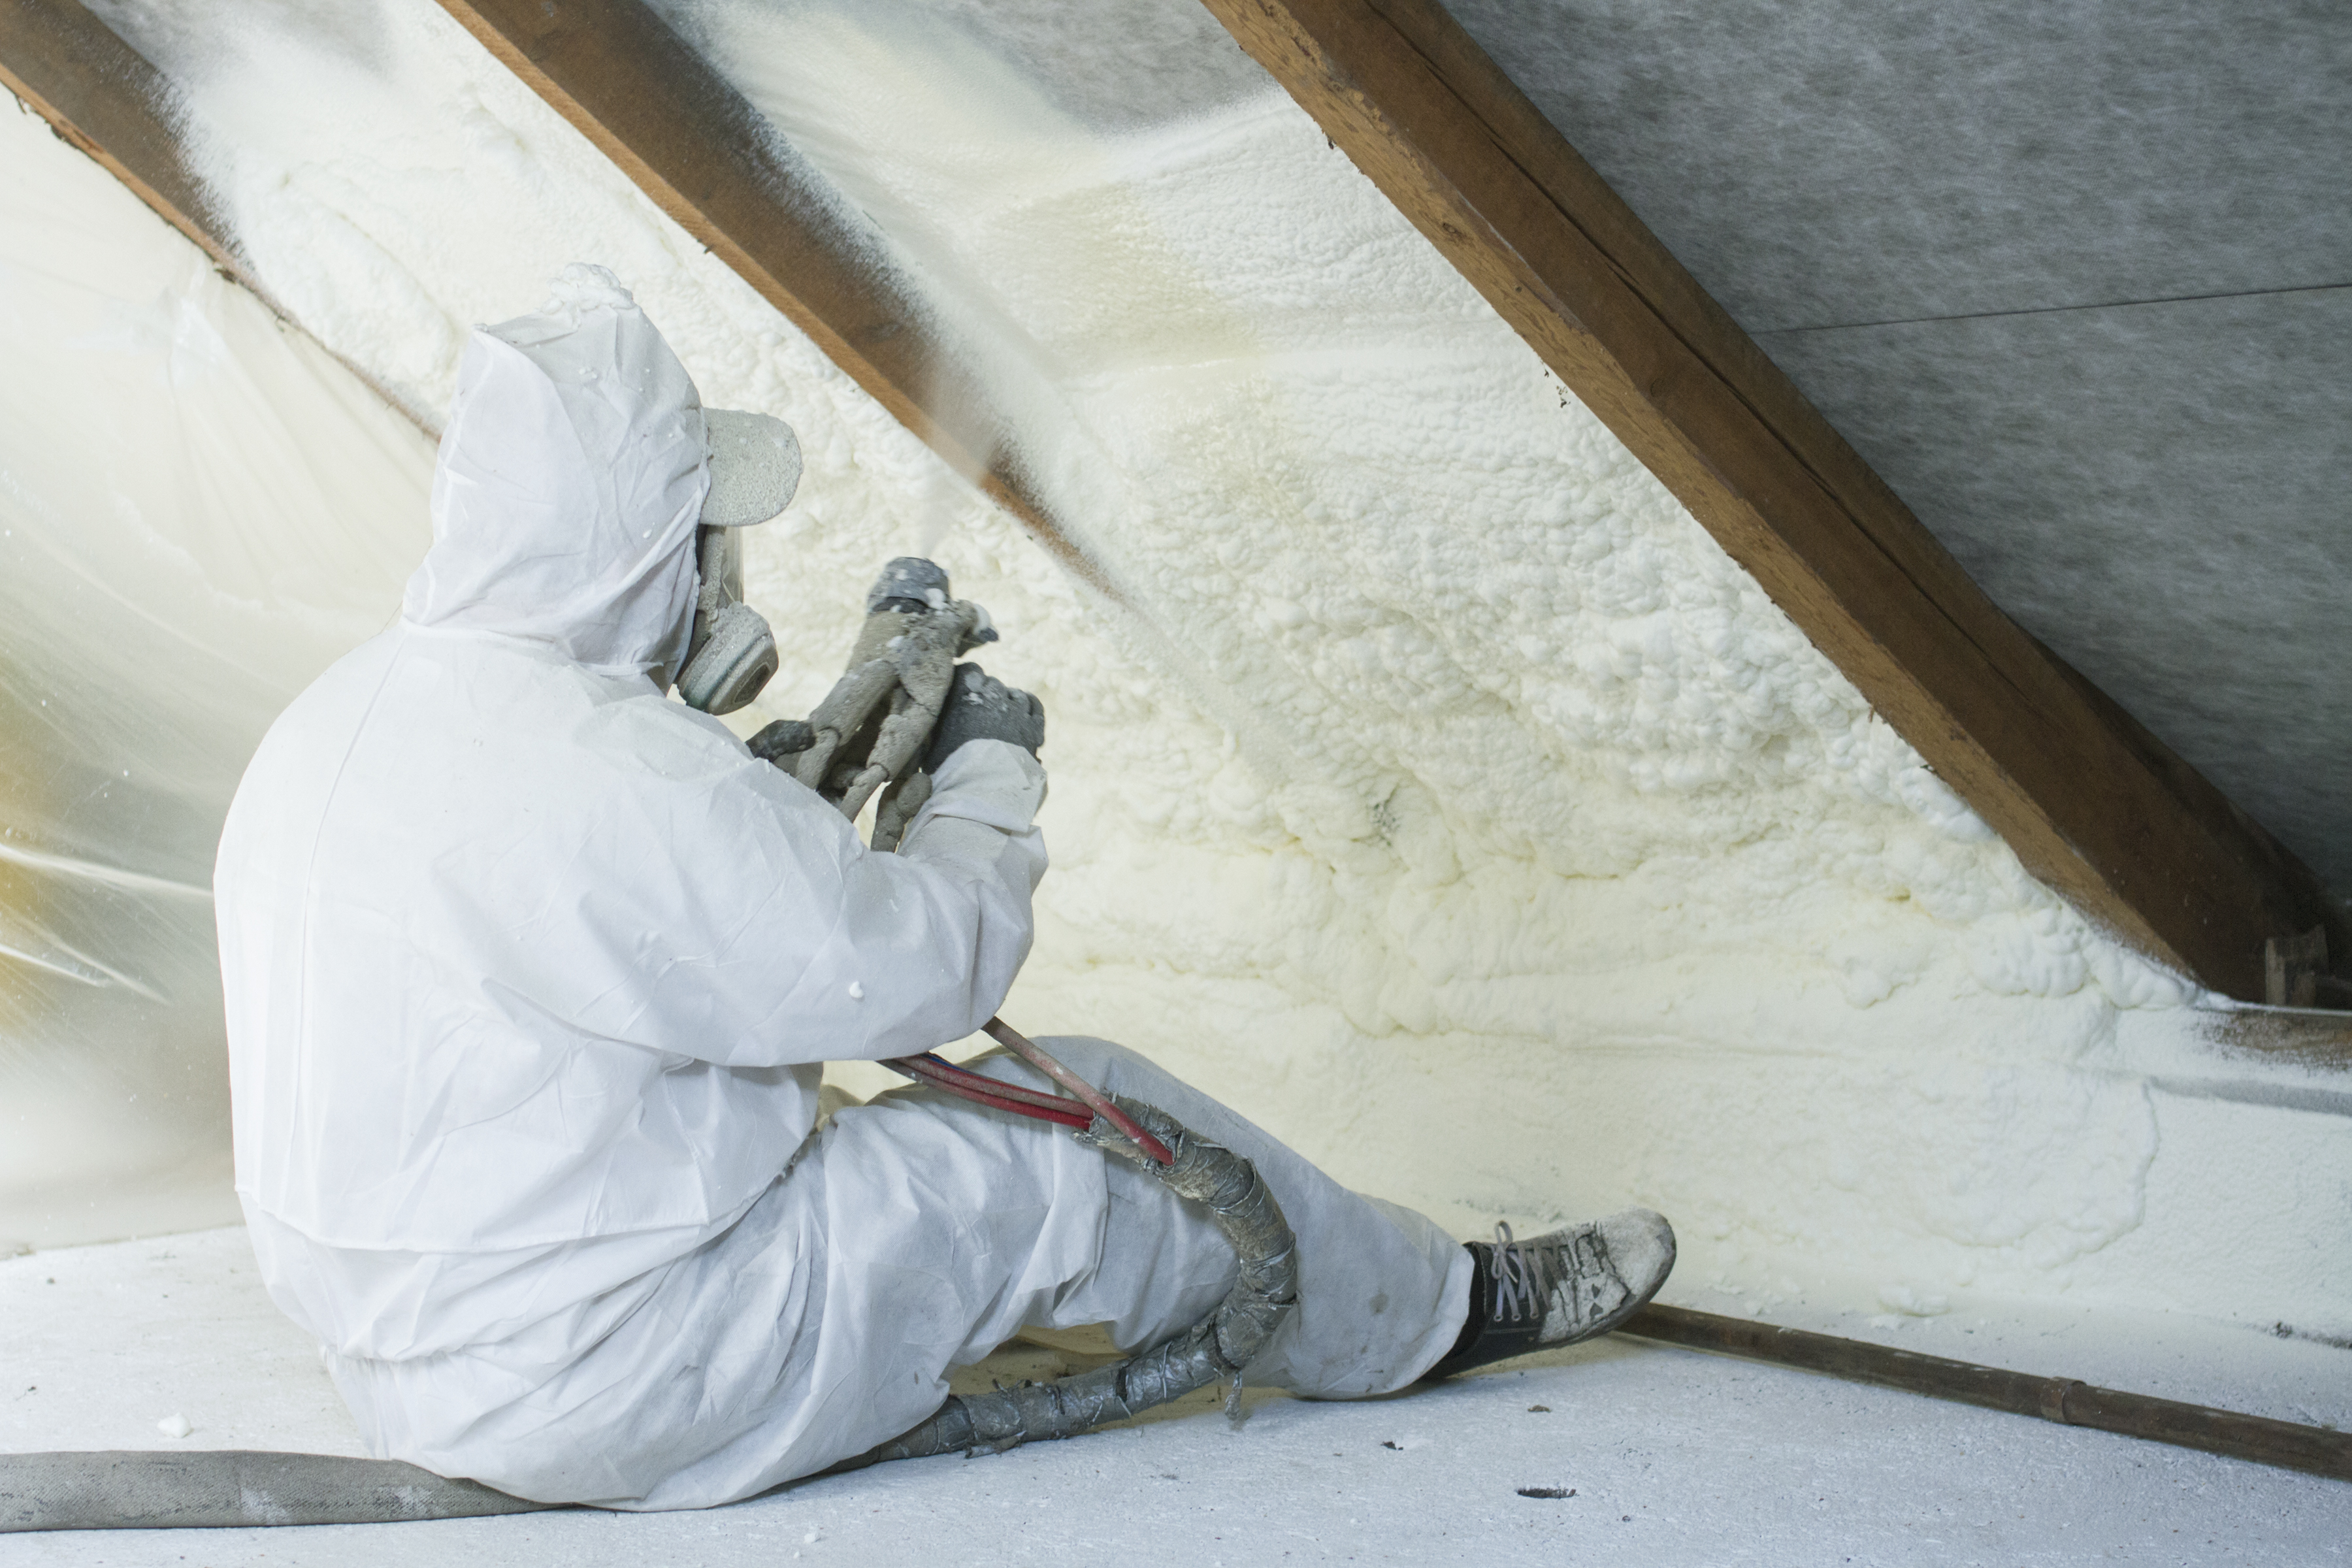 How to Remove Sprayed Wall Foam Insulation | Home Guides